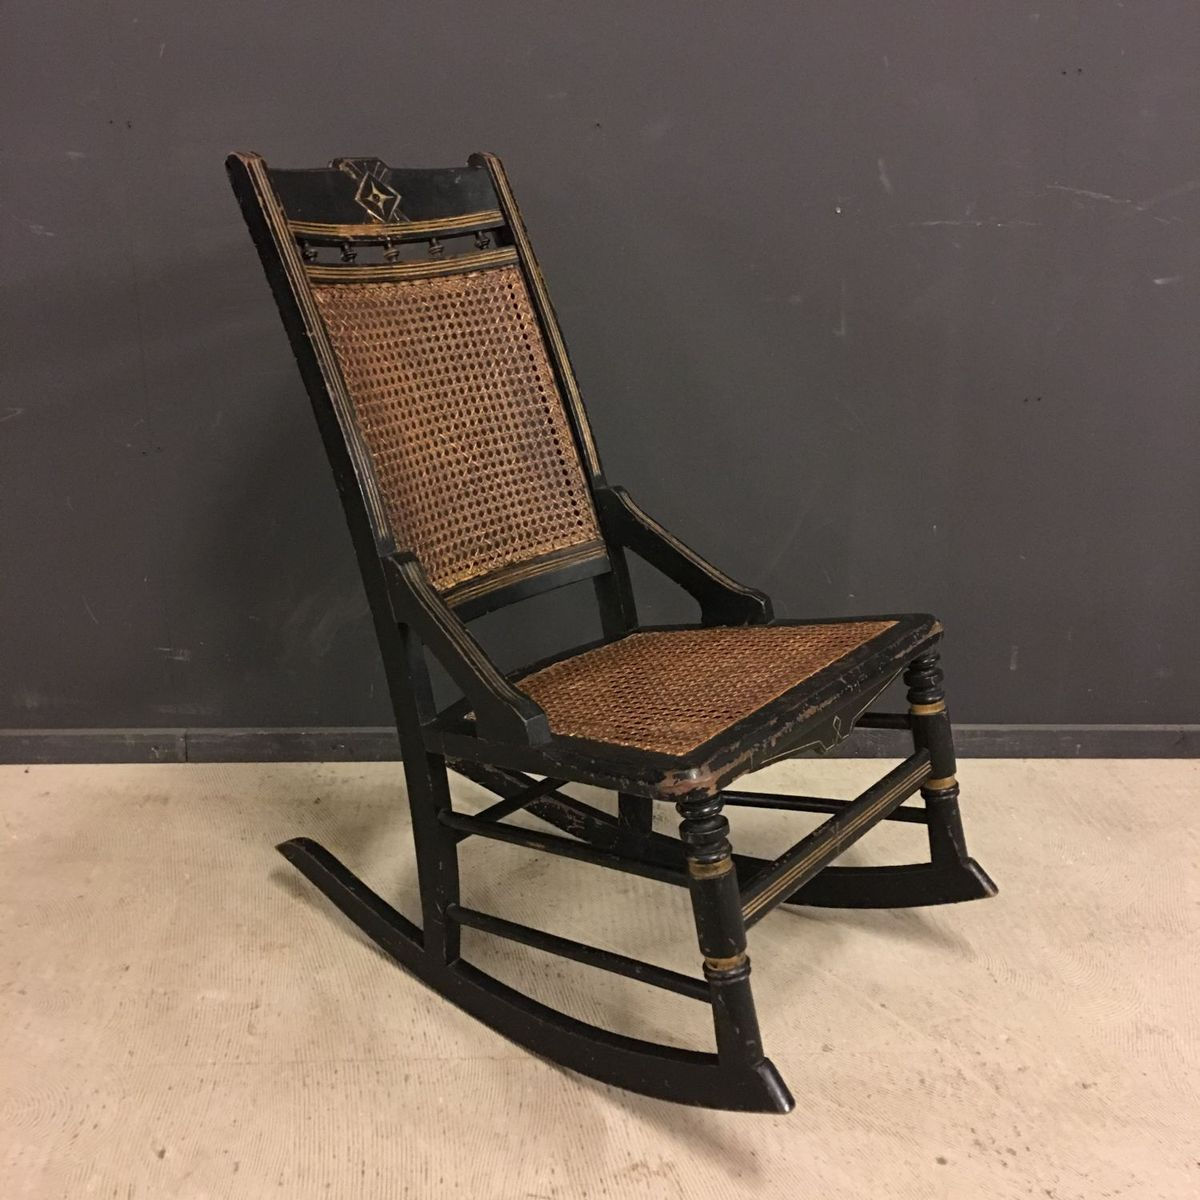 Antique commode chair - Antique Commode Chair